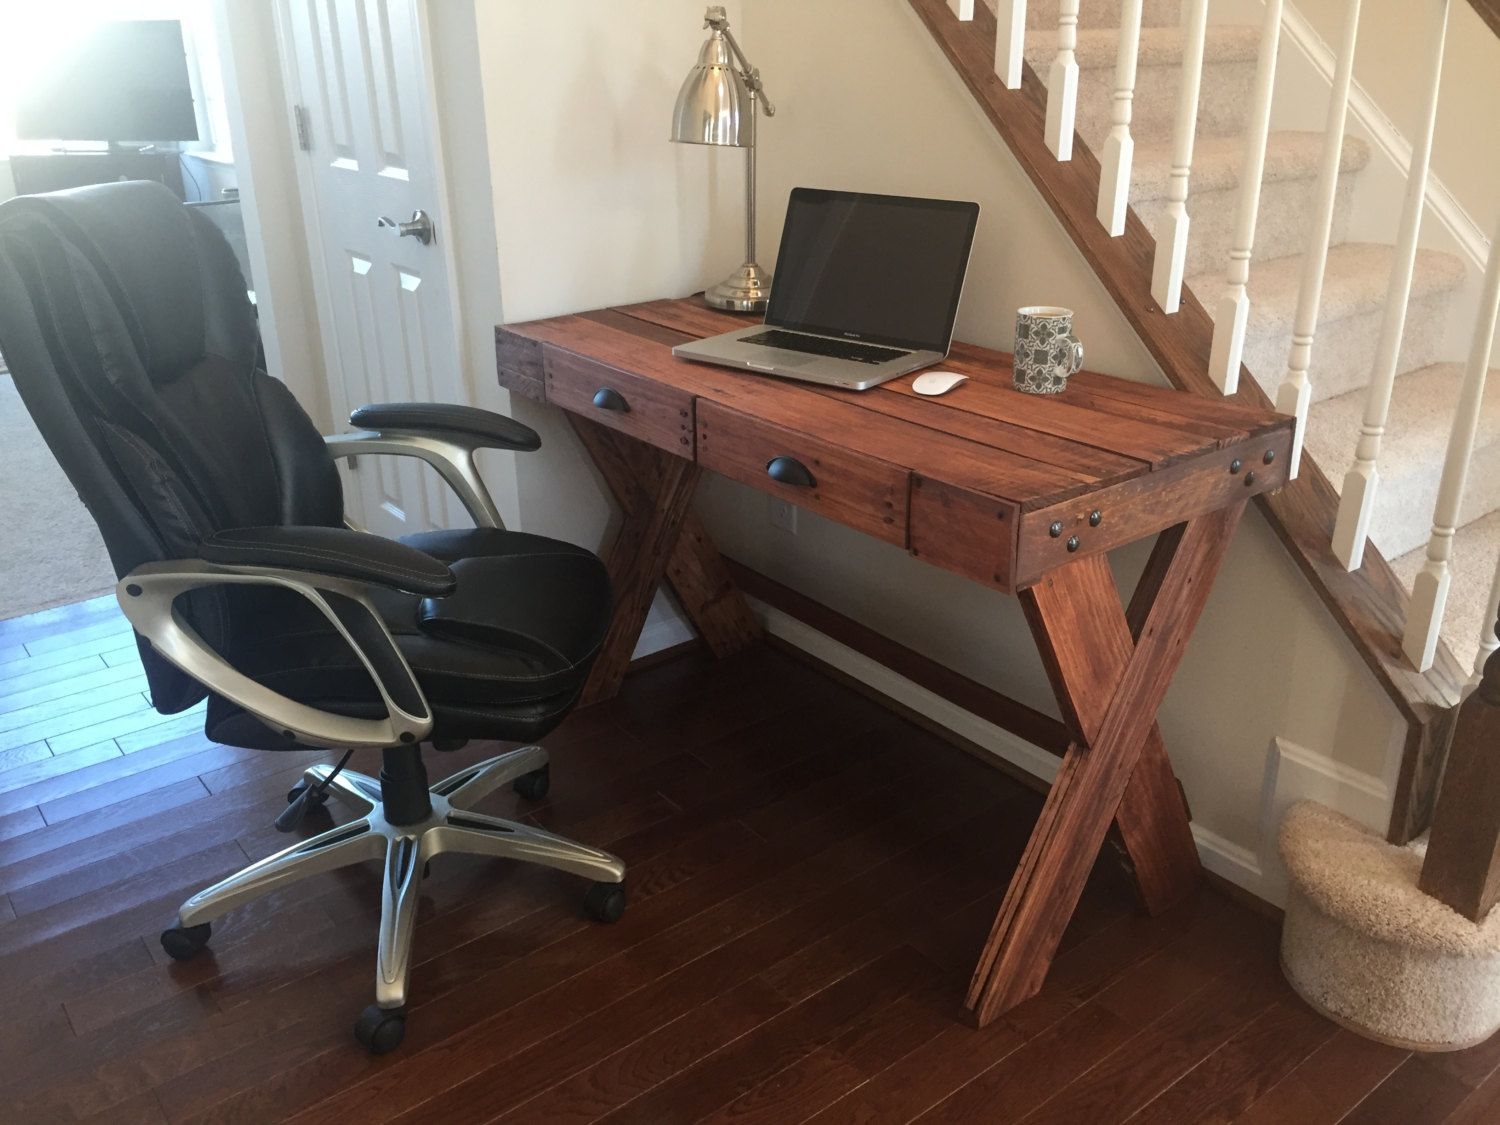 Pallet desk by ironcrafts on etsy pallet desk pinterest pallet